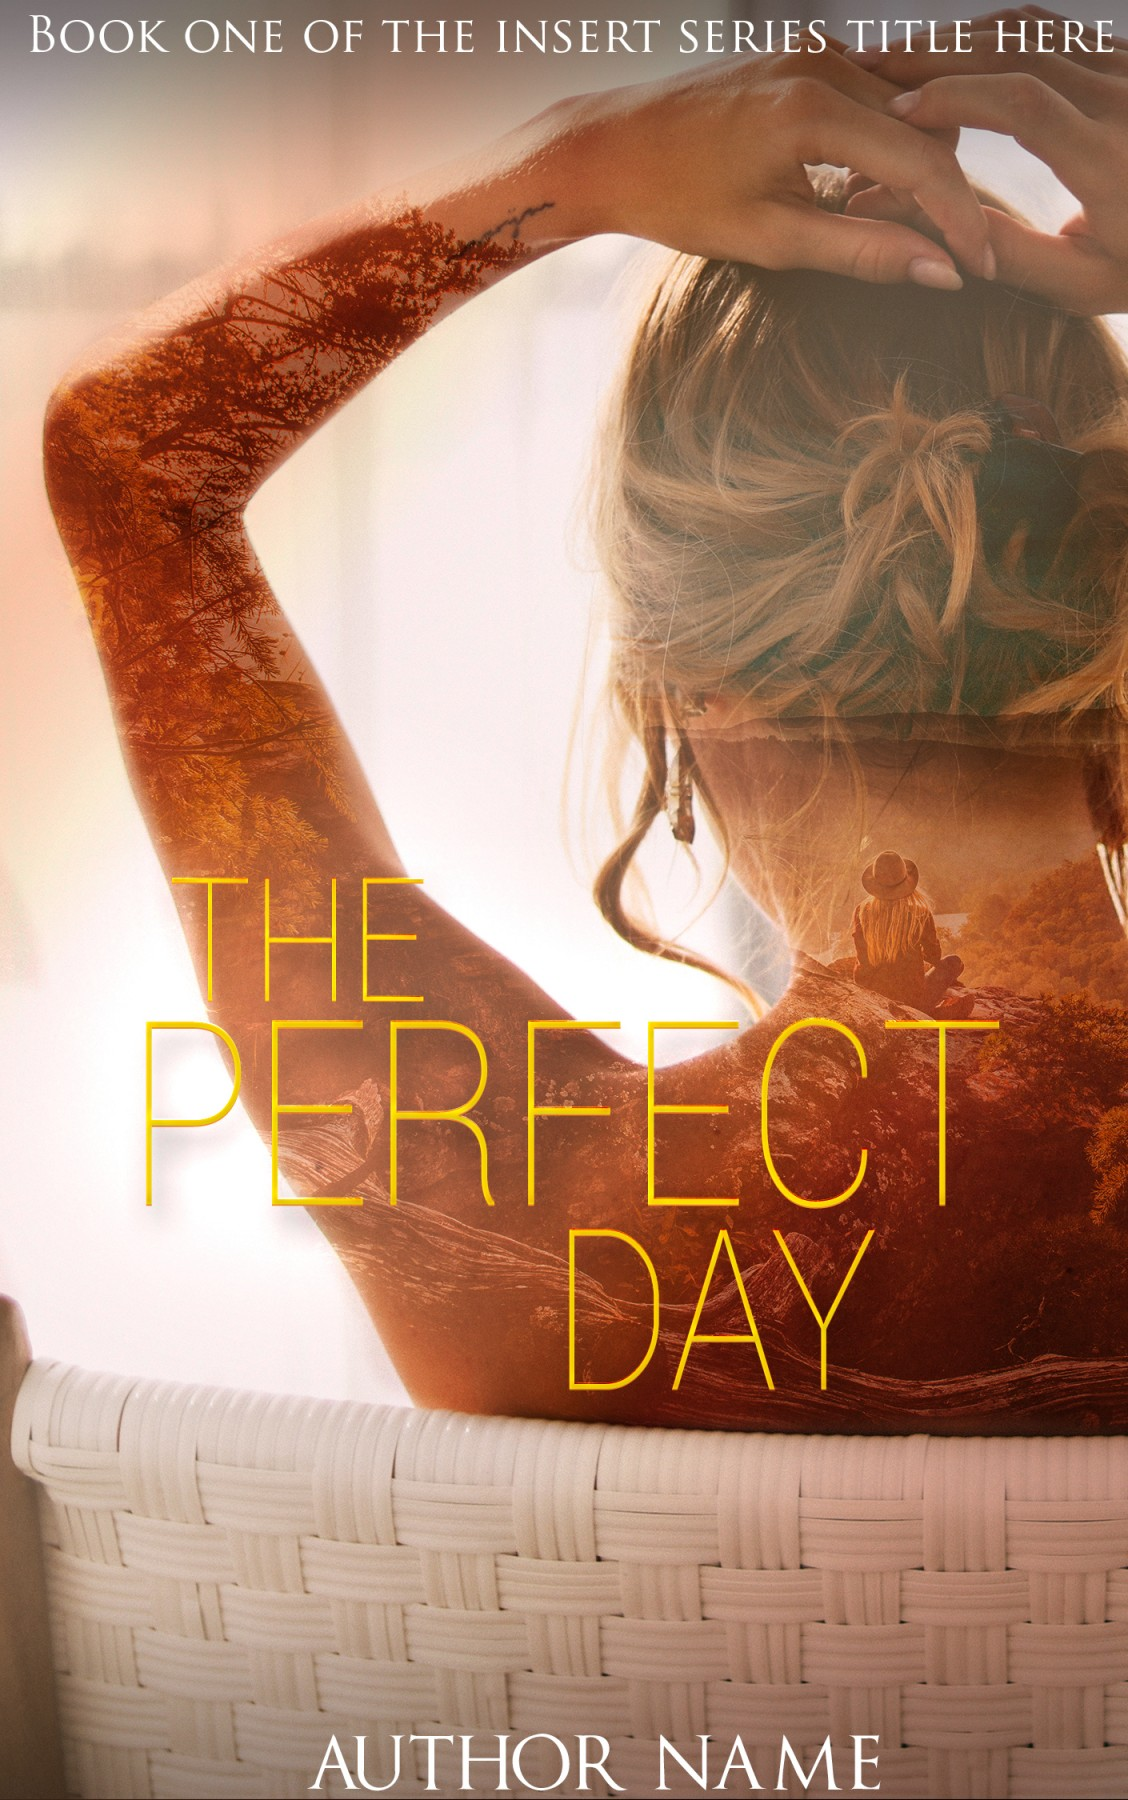 Perfect Day - Erotic Short Story for Women